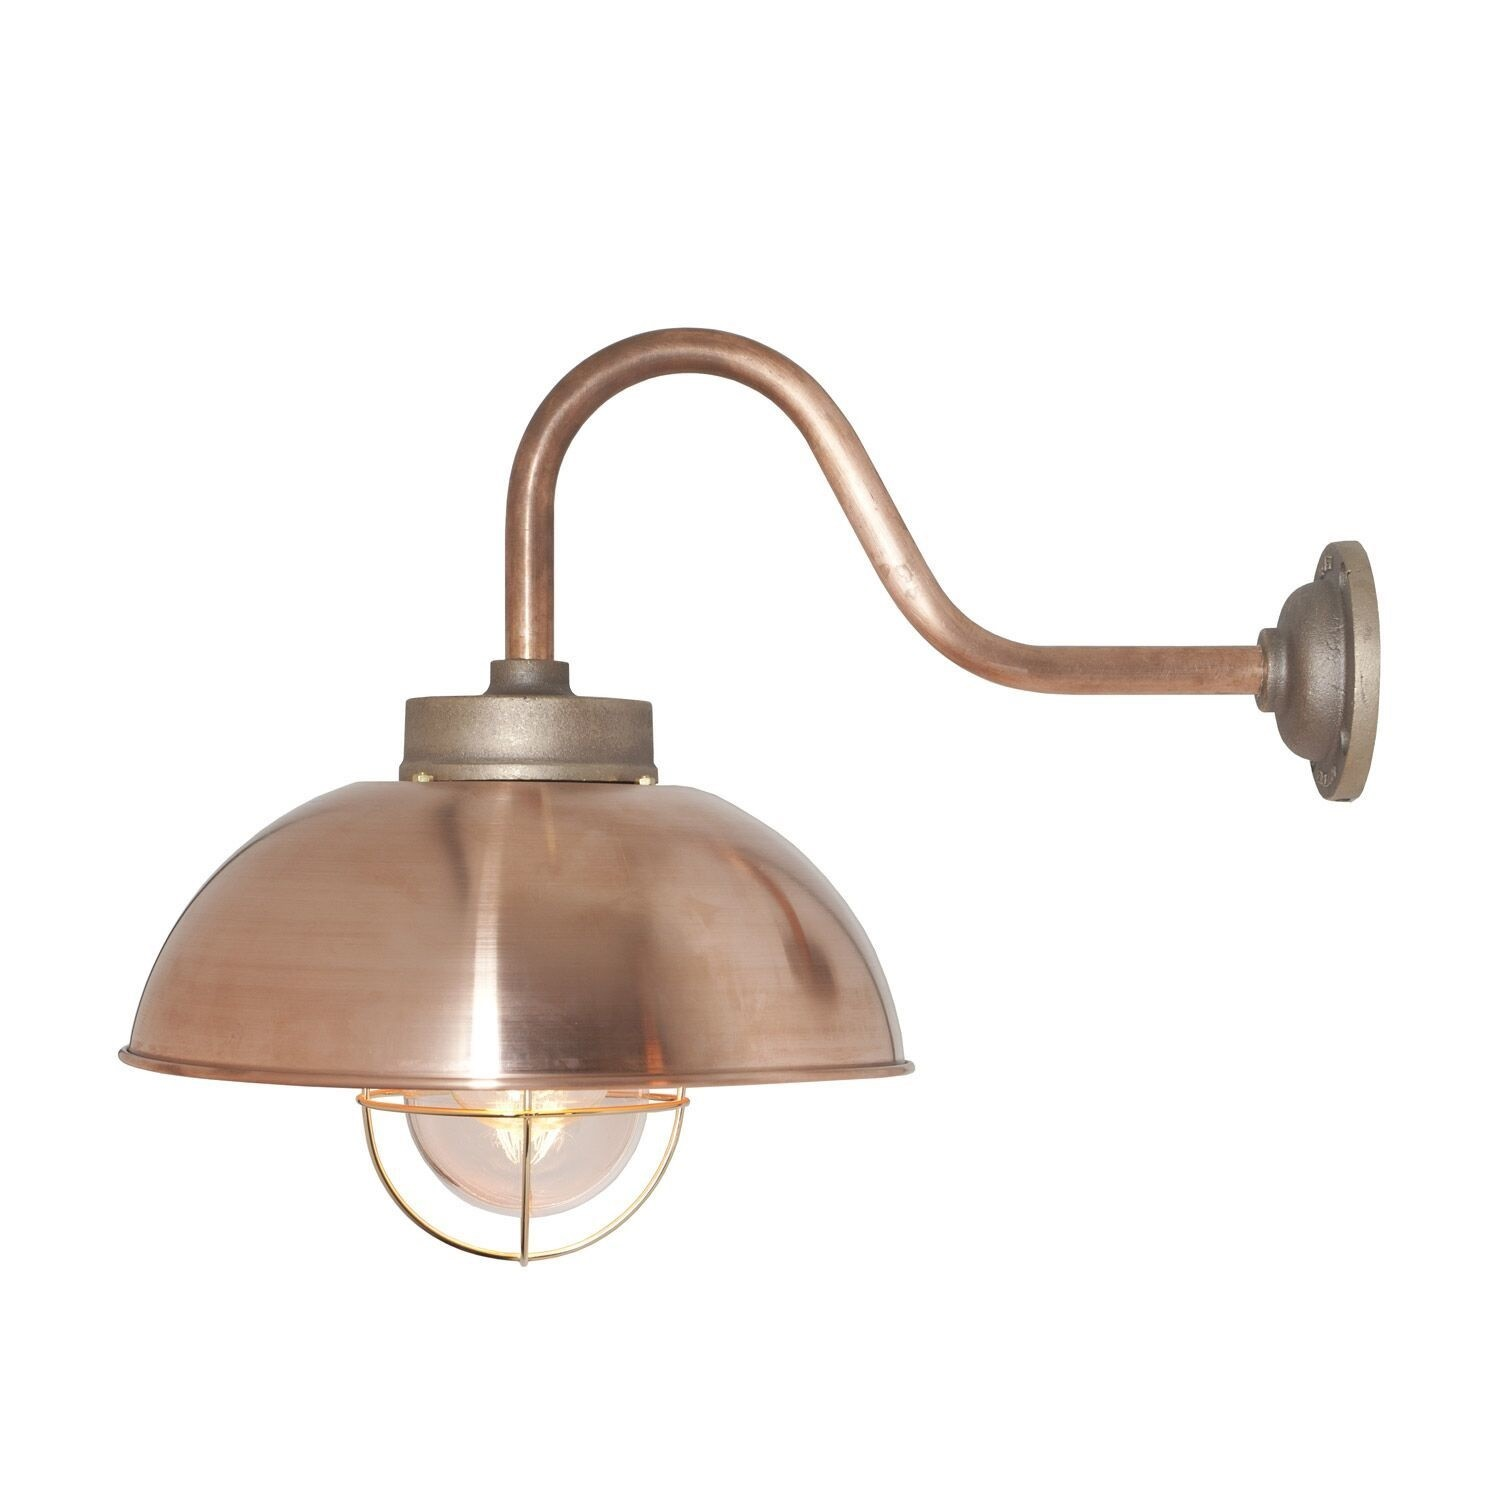 Shipyard Wall Light 7222 Copper, Clear glass